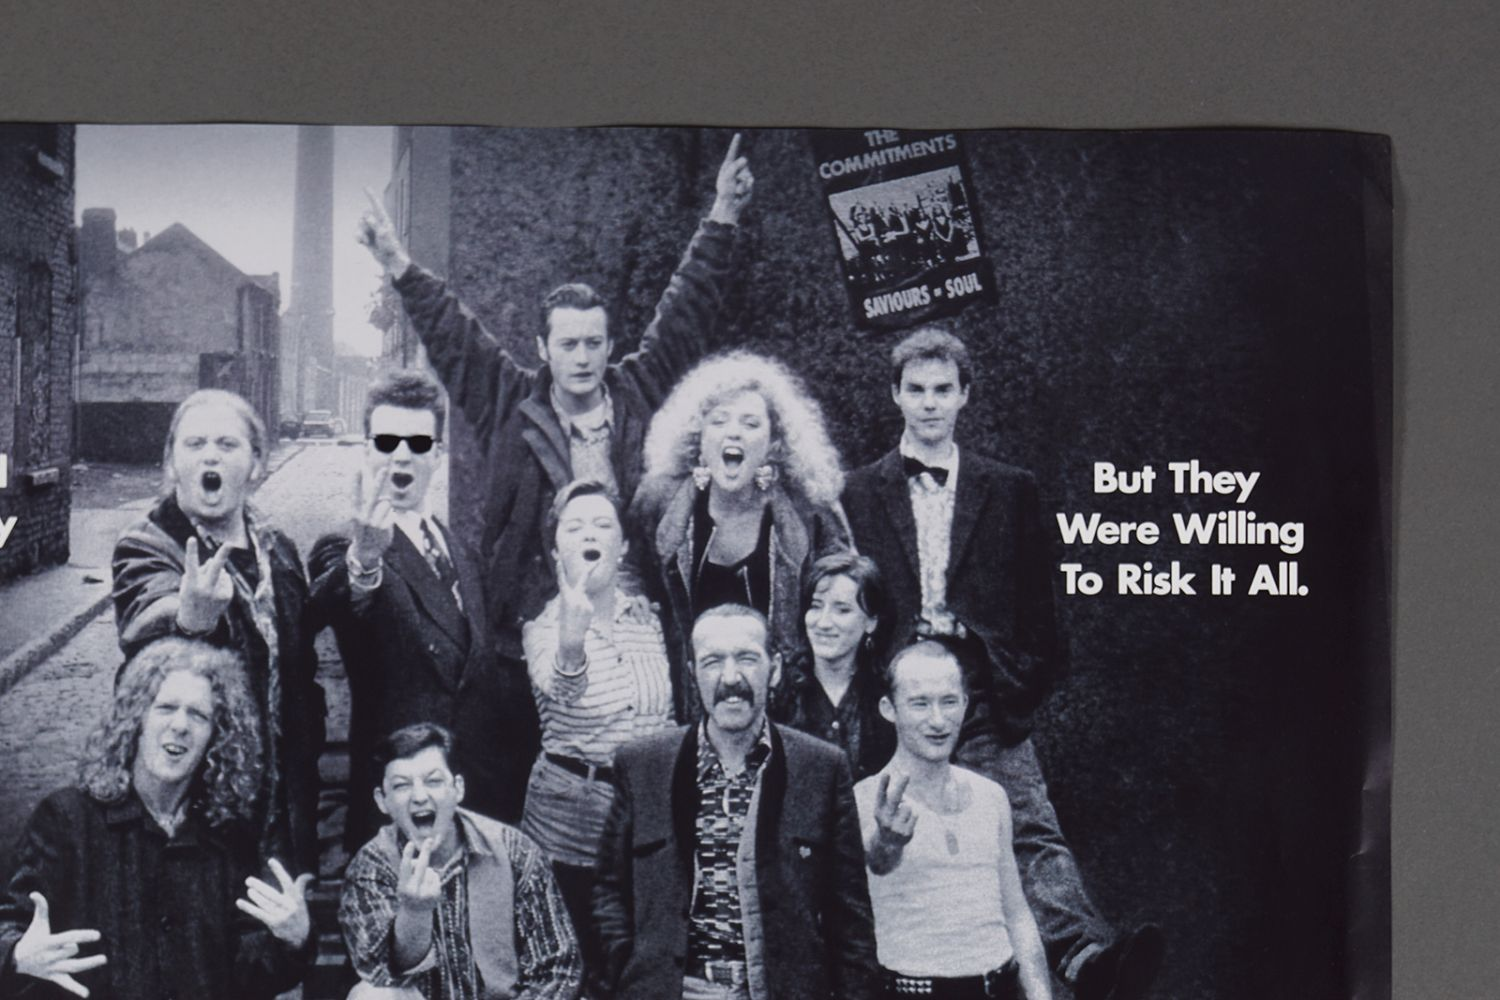 THE COMMITMENTS - Image 2 of 3